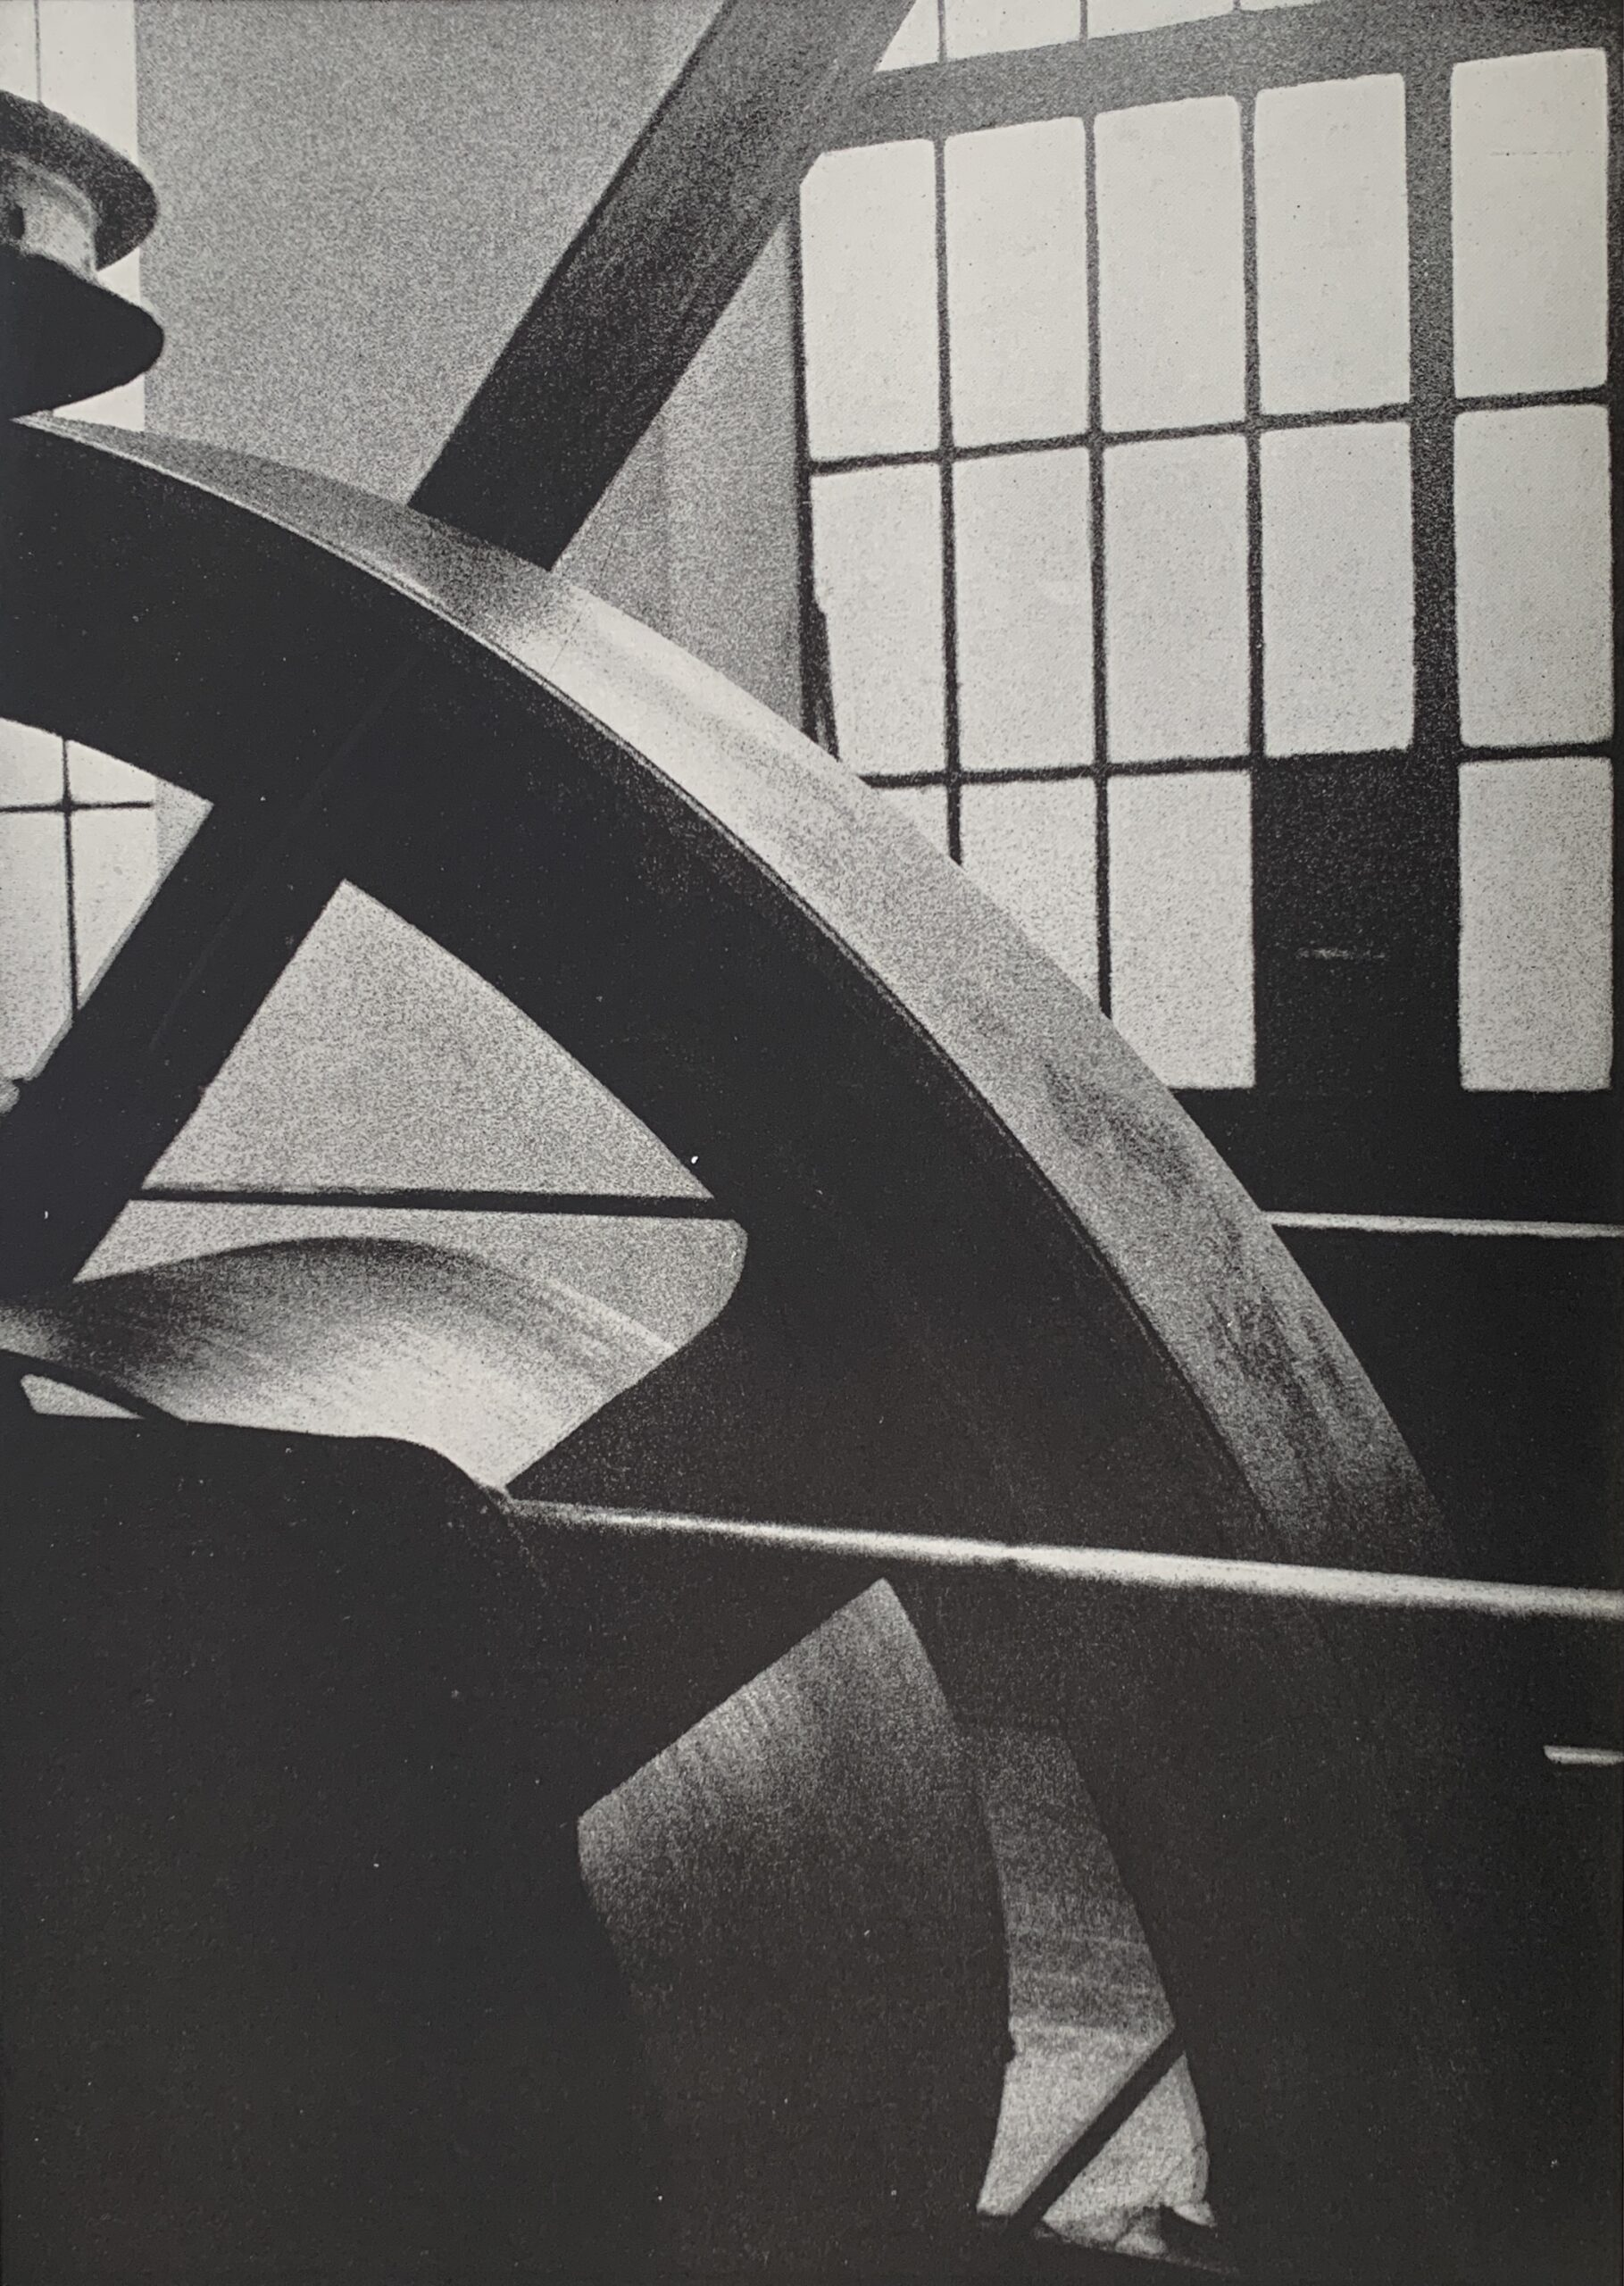 The Pictorialist photobook by Betti Mautner. Published 1931. Image courtesy of James Hyman. A big machine mechanism is in black and white.